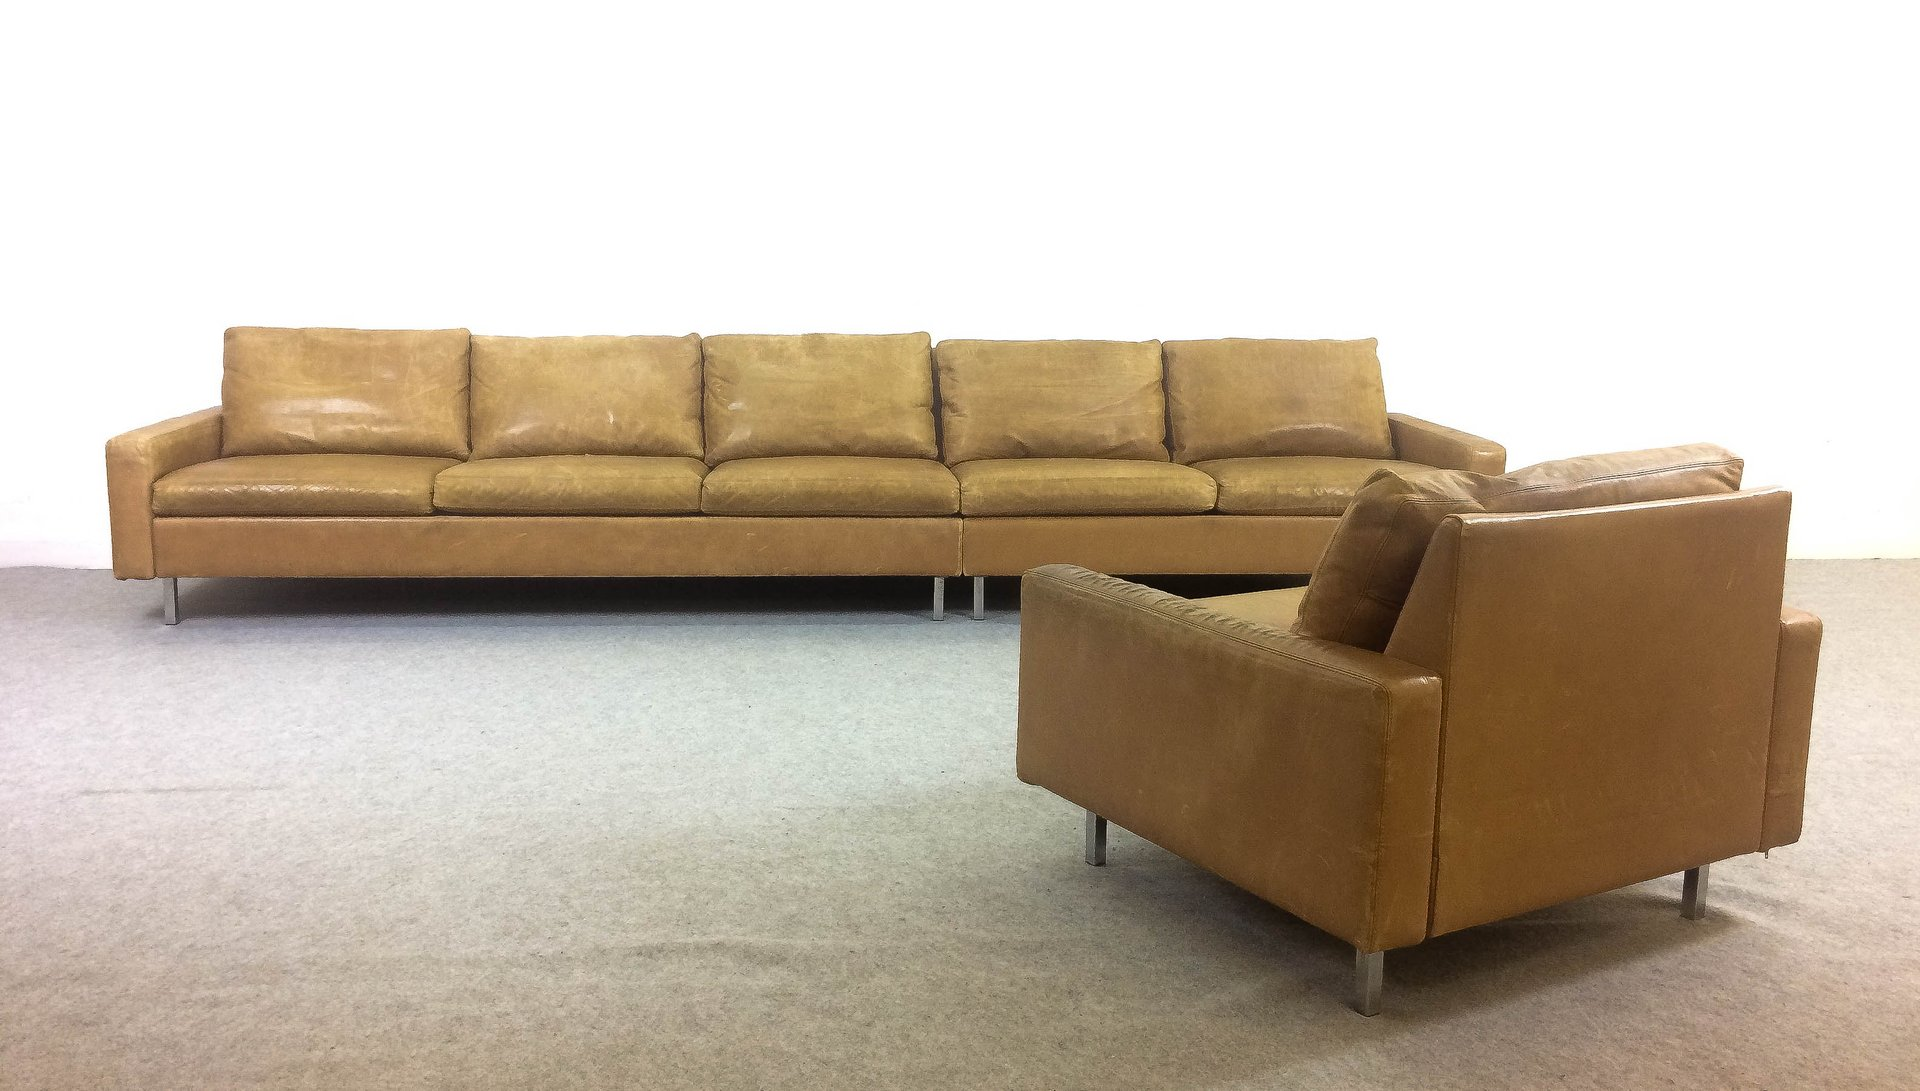 4 Seater Sofa Cover Images 3 Suitable For